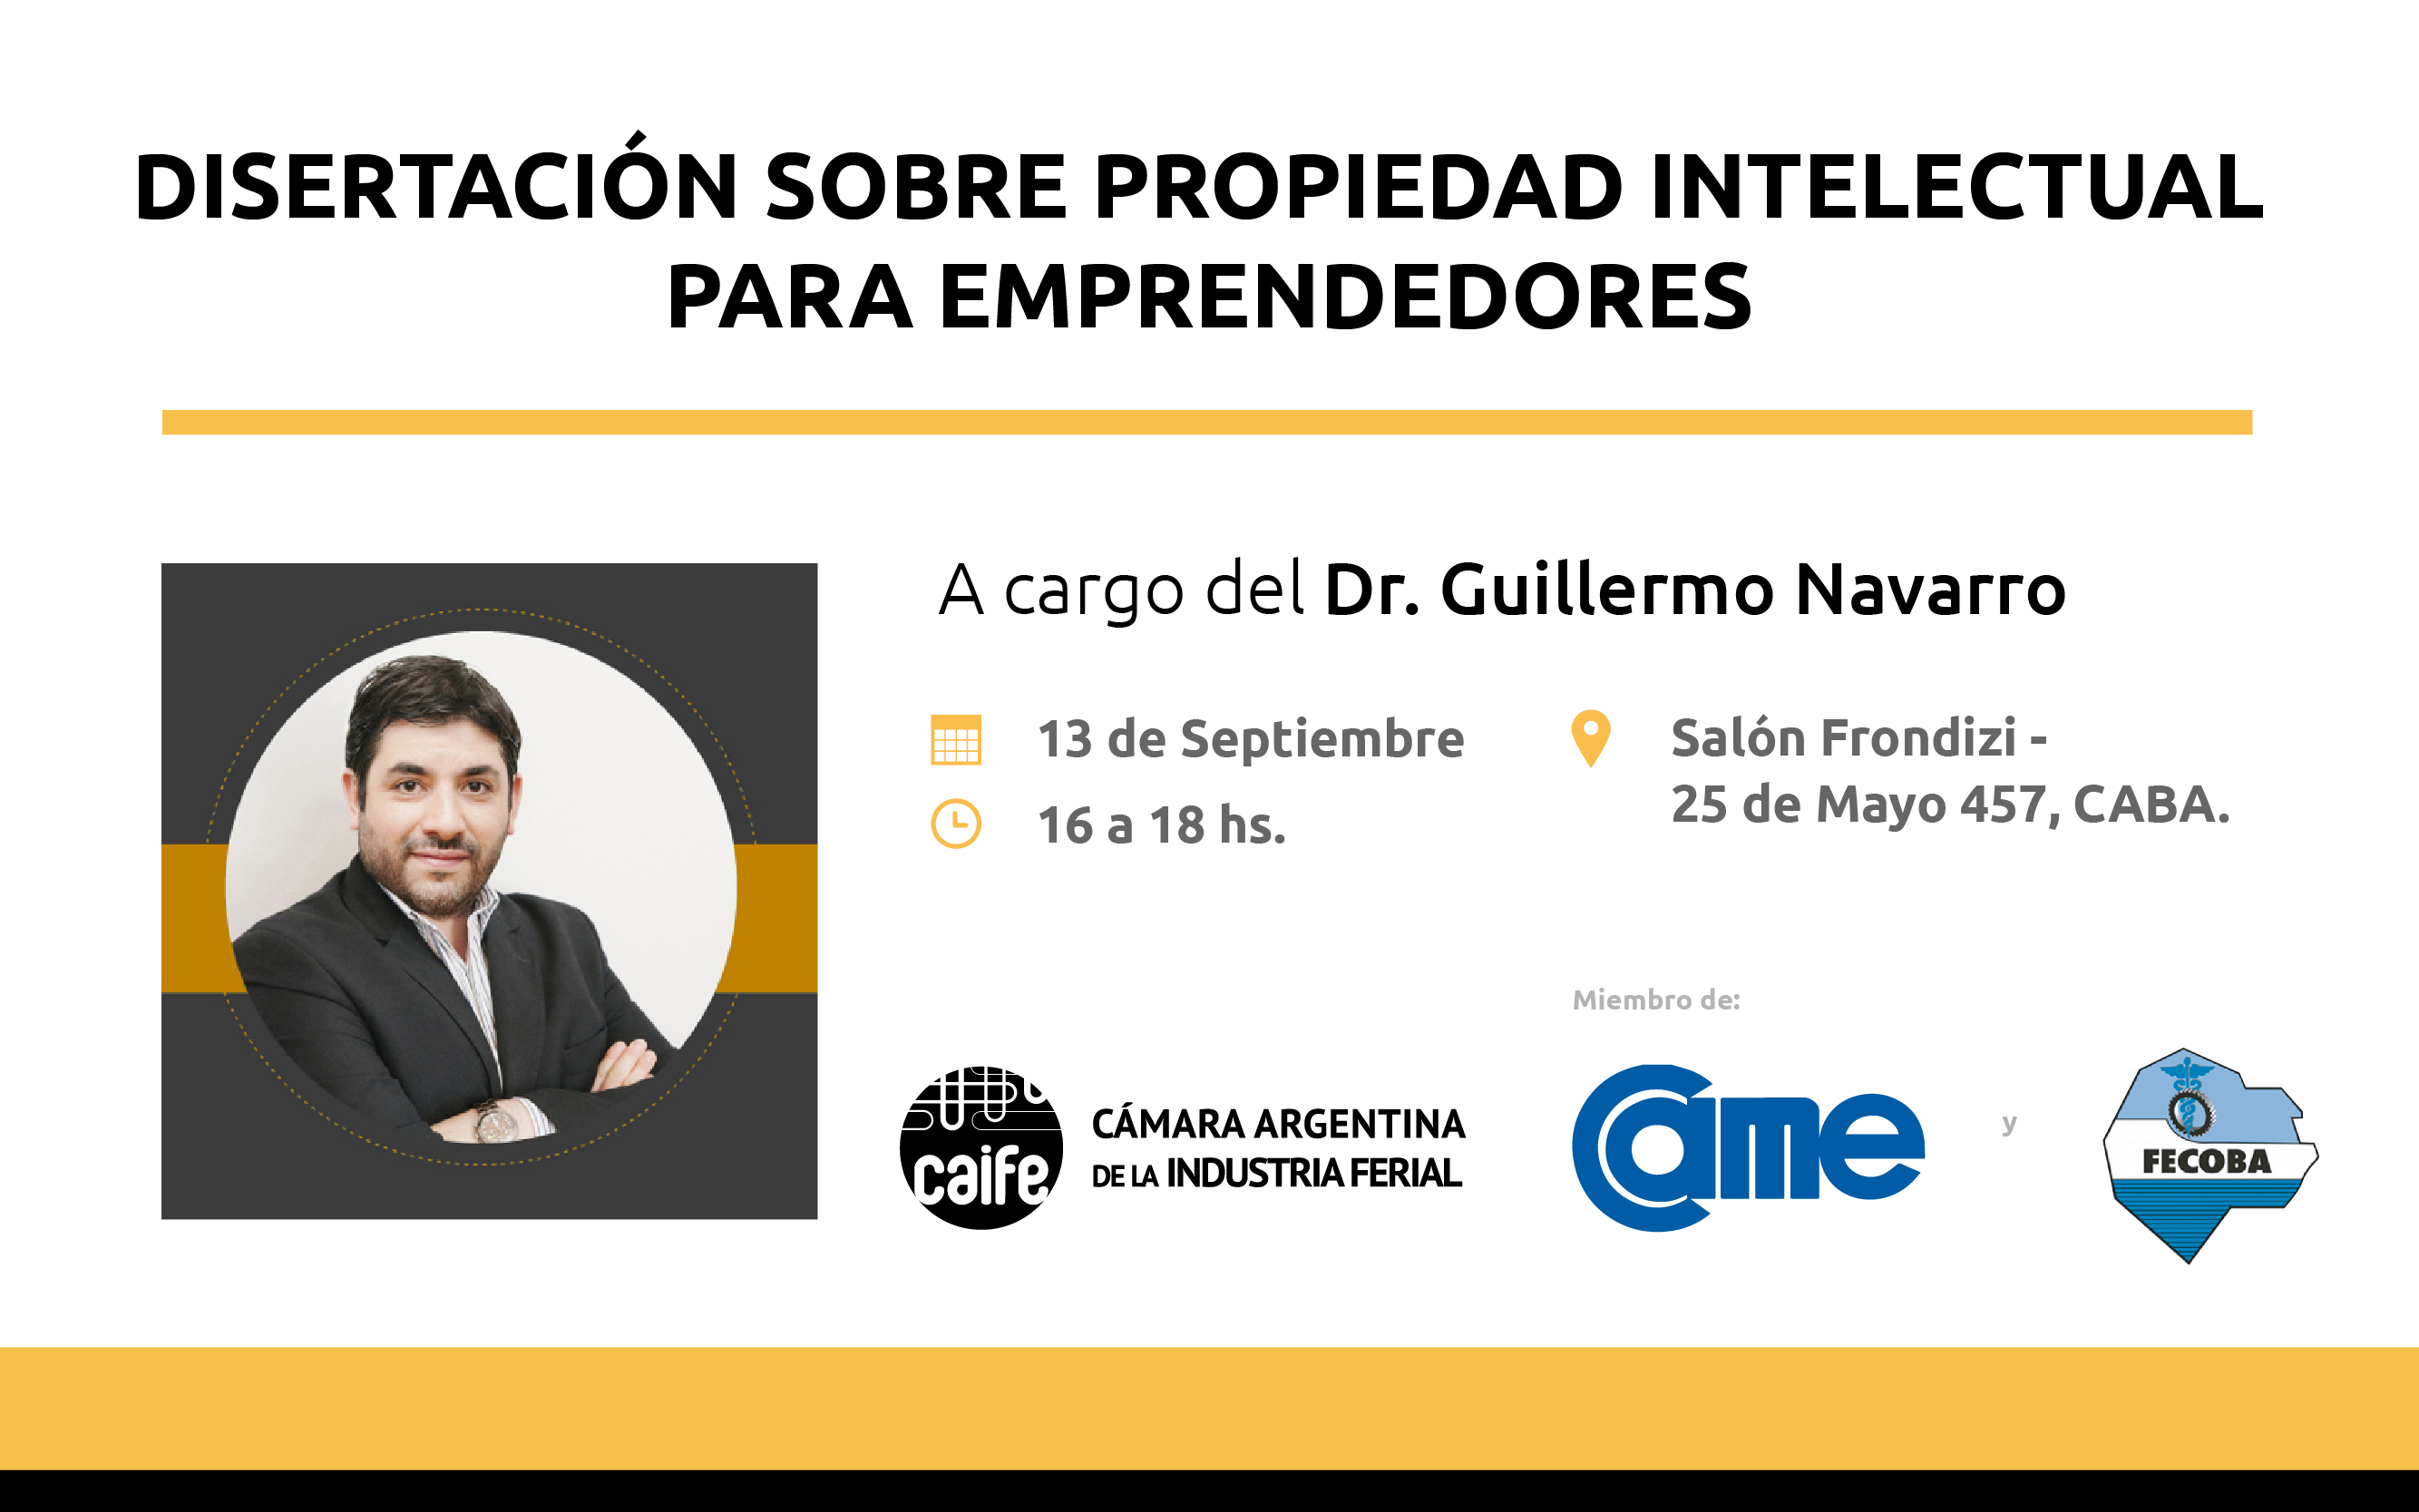 caife_TALLER_redes3-01